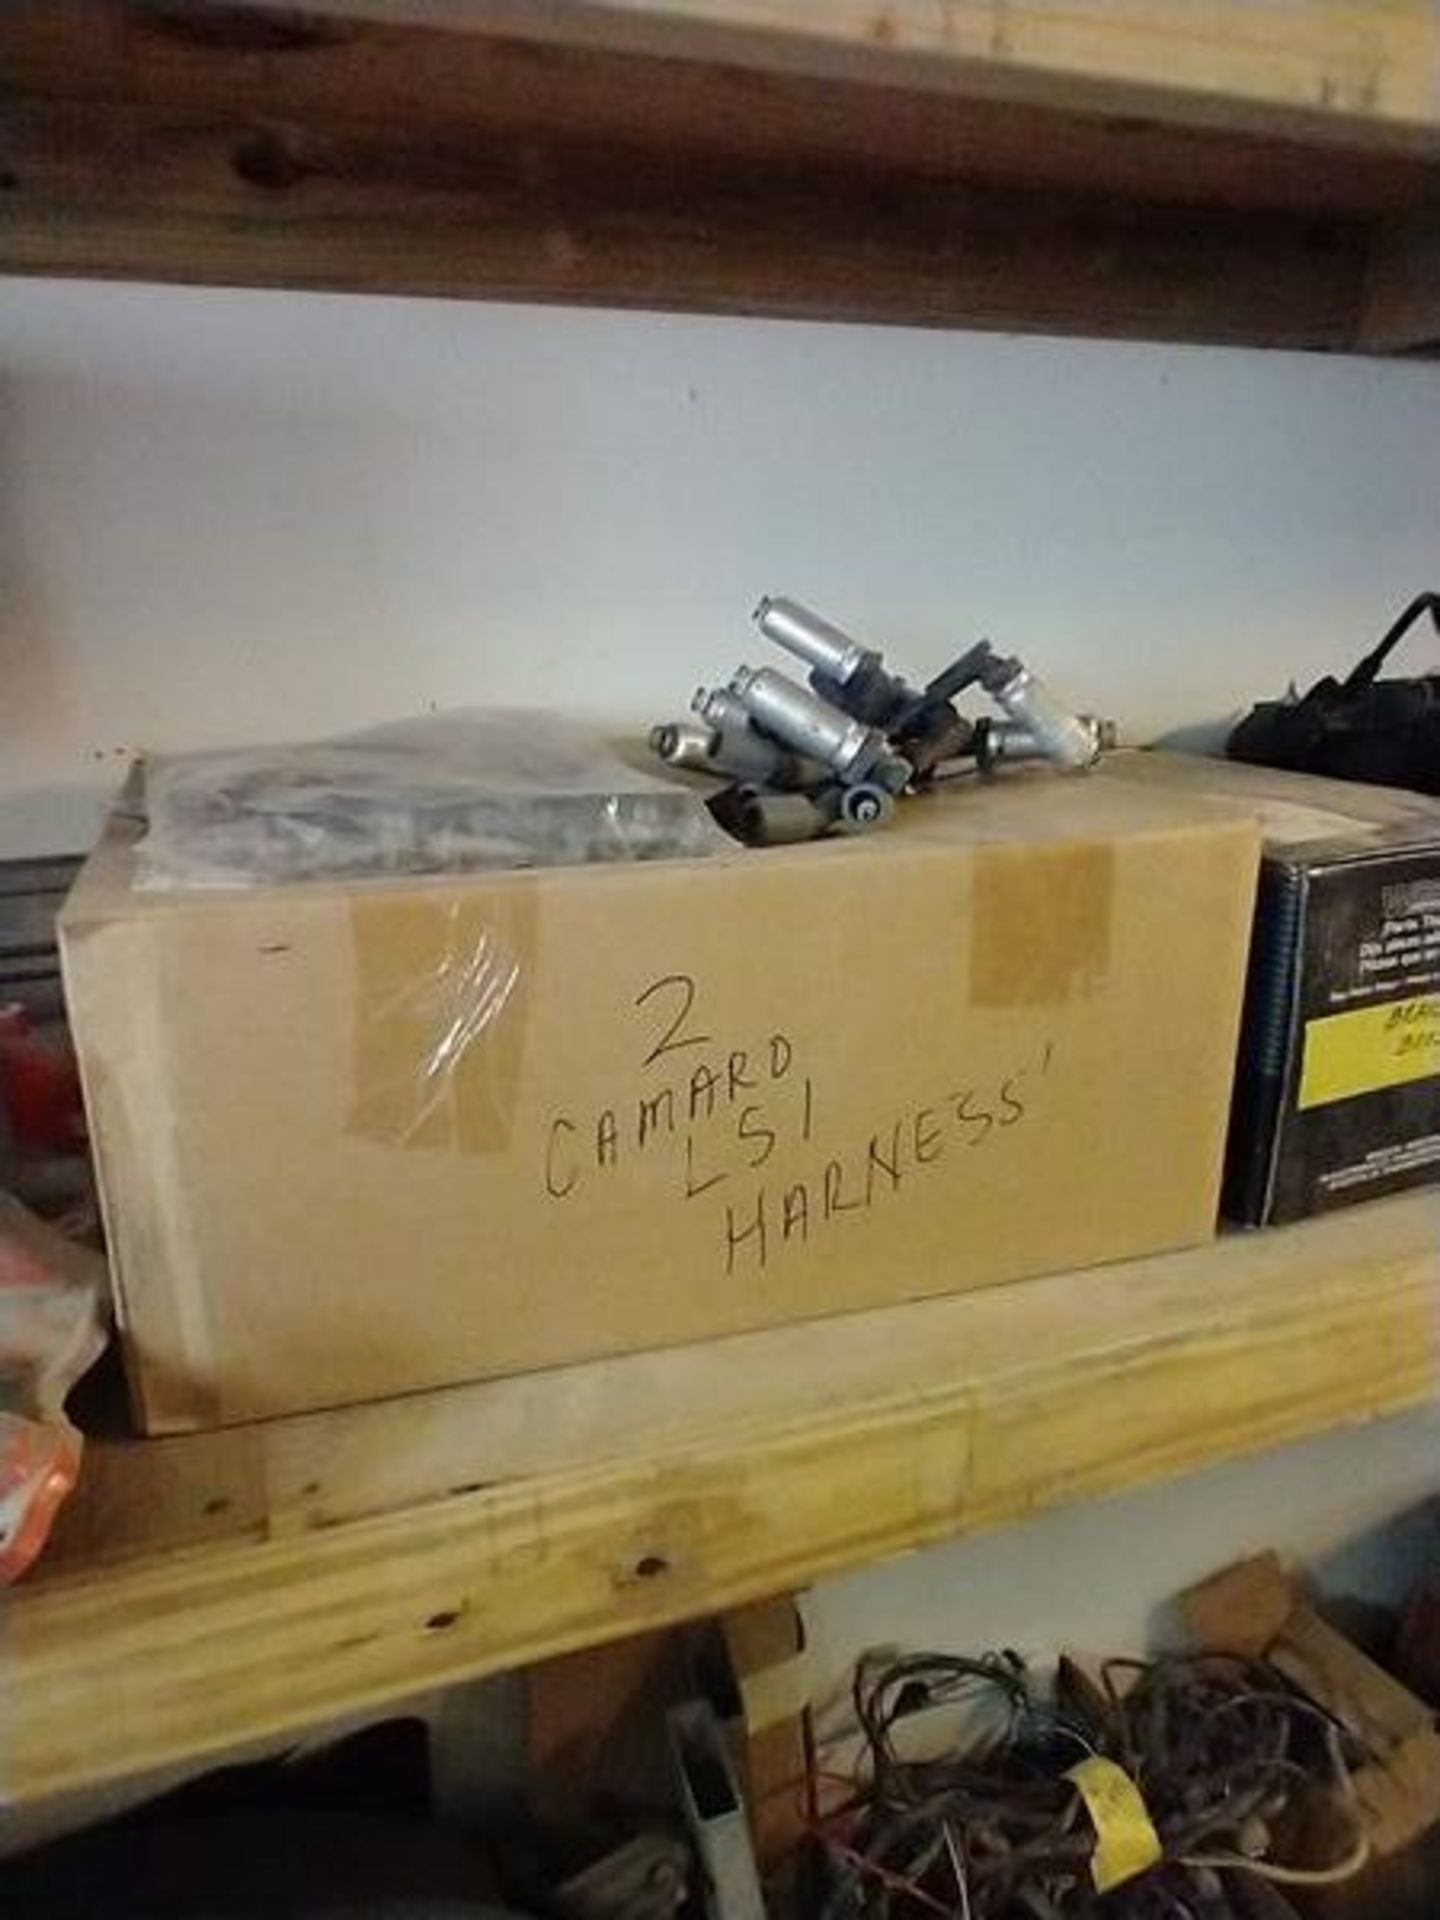 LOT OF ASSORTED CAR PARTS ON 2 SHELVES AND FLOOR - Image 5 of 23